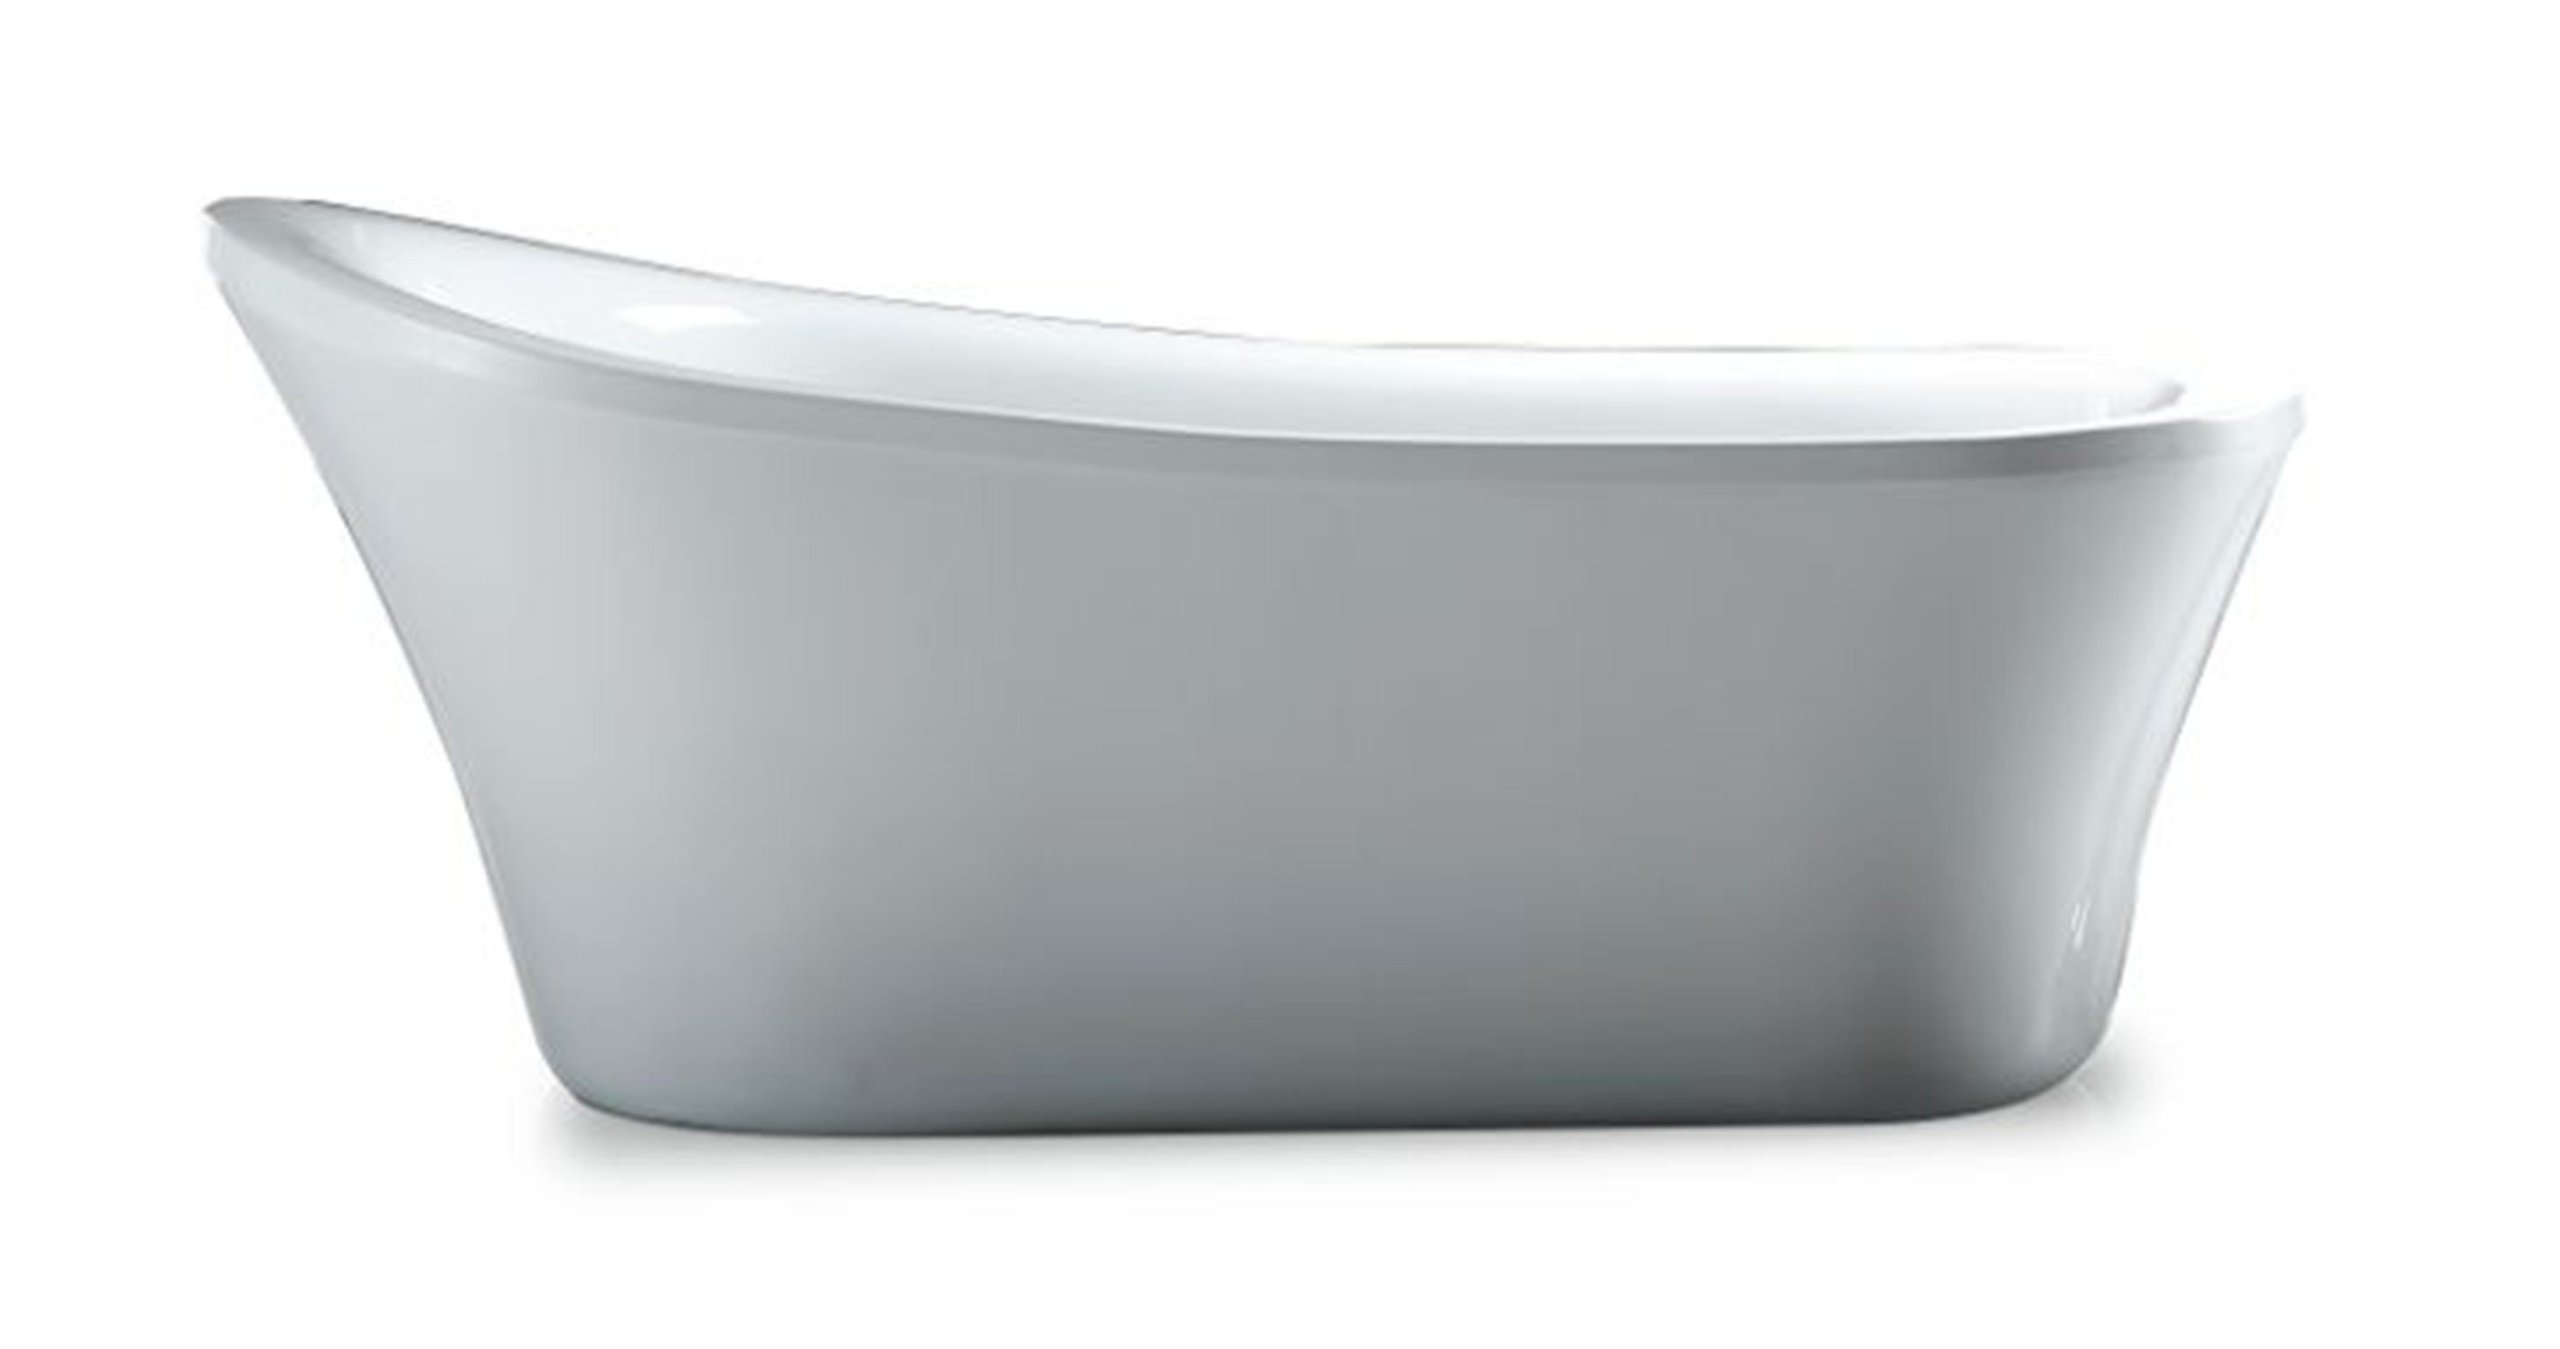 Ove Decors Rachel 70-Inch Freestanding Acrylic Bathtub, Pure white by Ove Decors